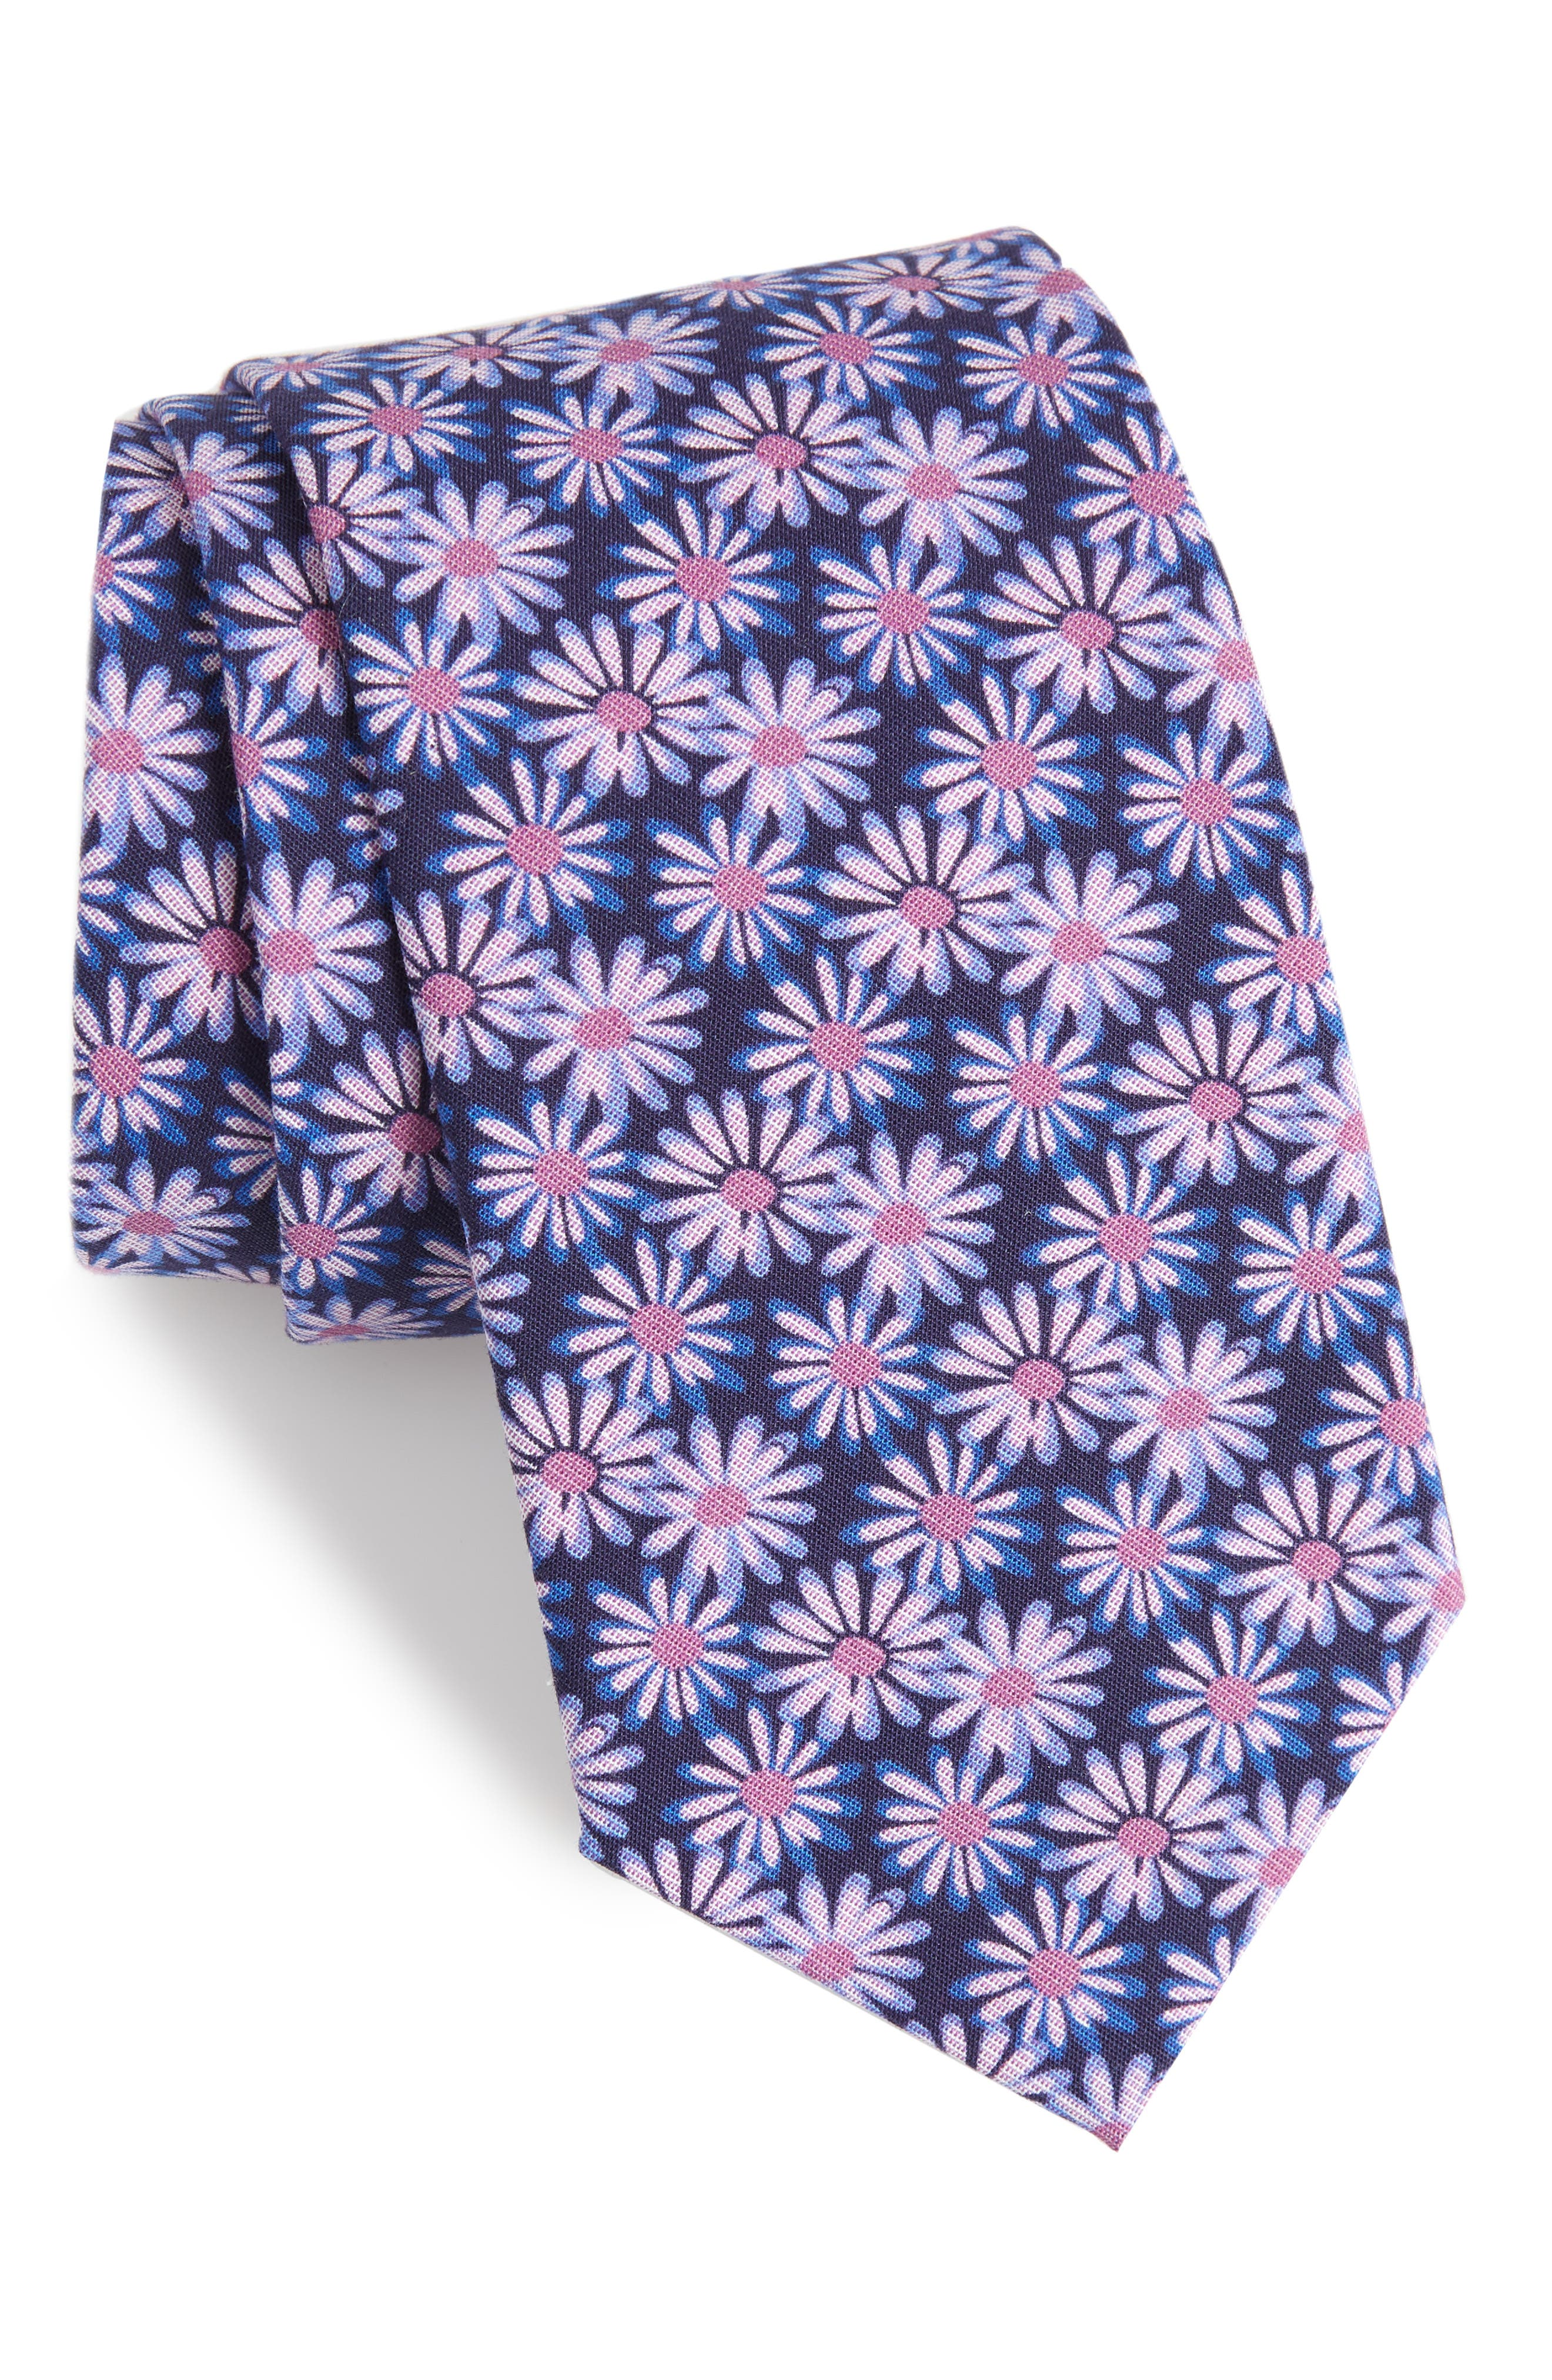 Floral Breeze Print Cotton Tie,                         Main,                         color, Grape Shade